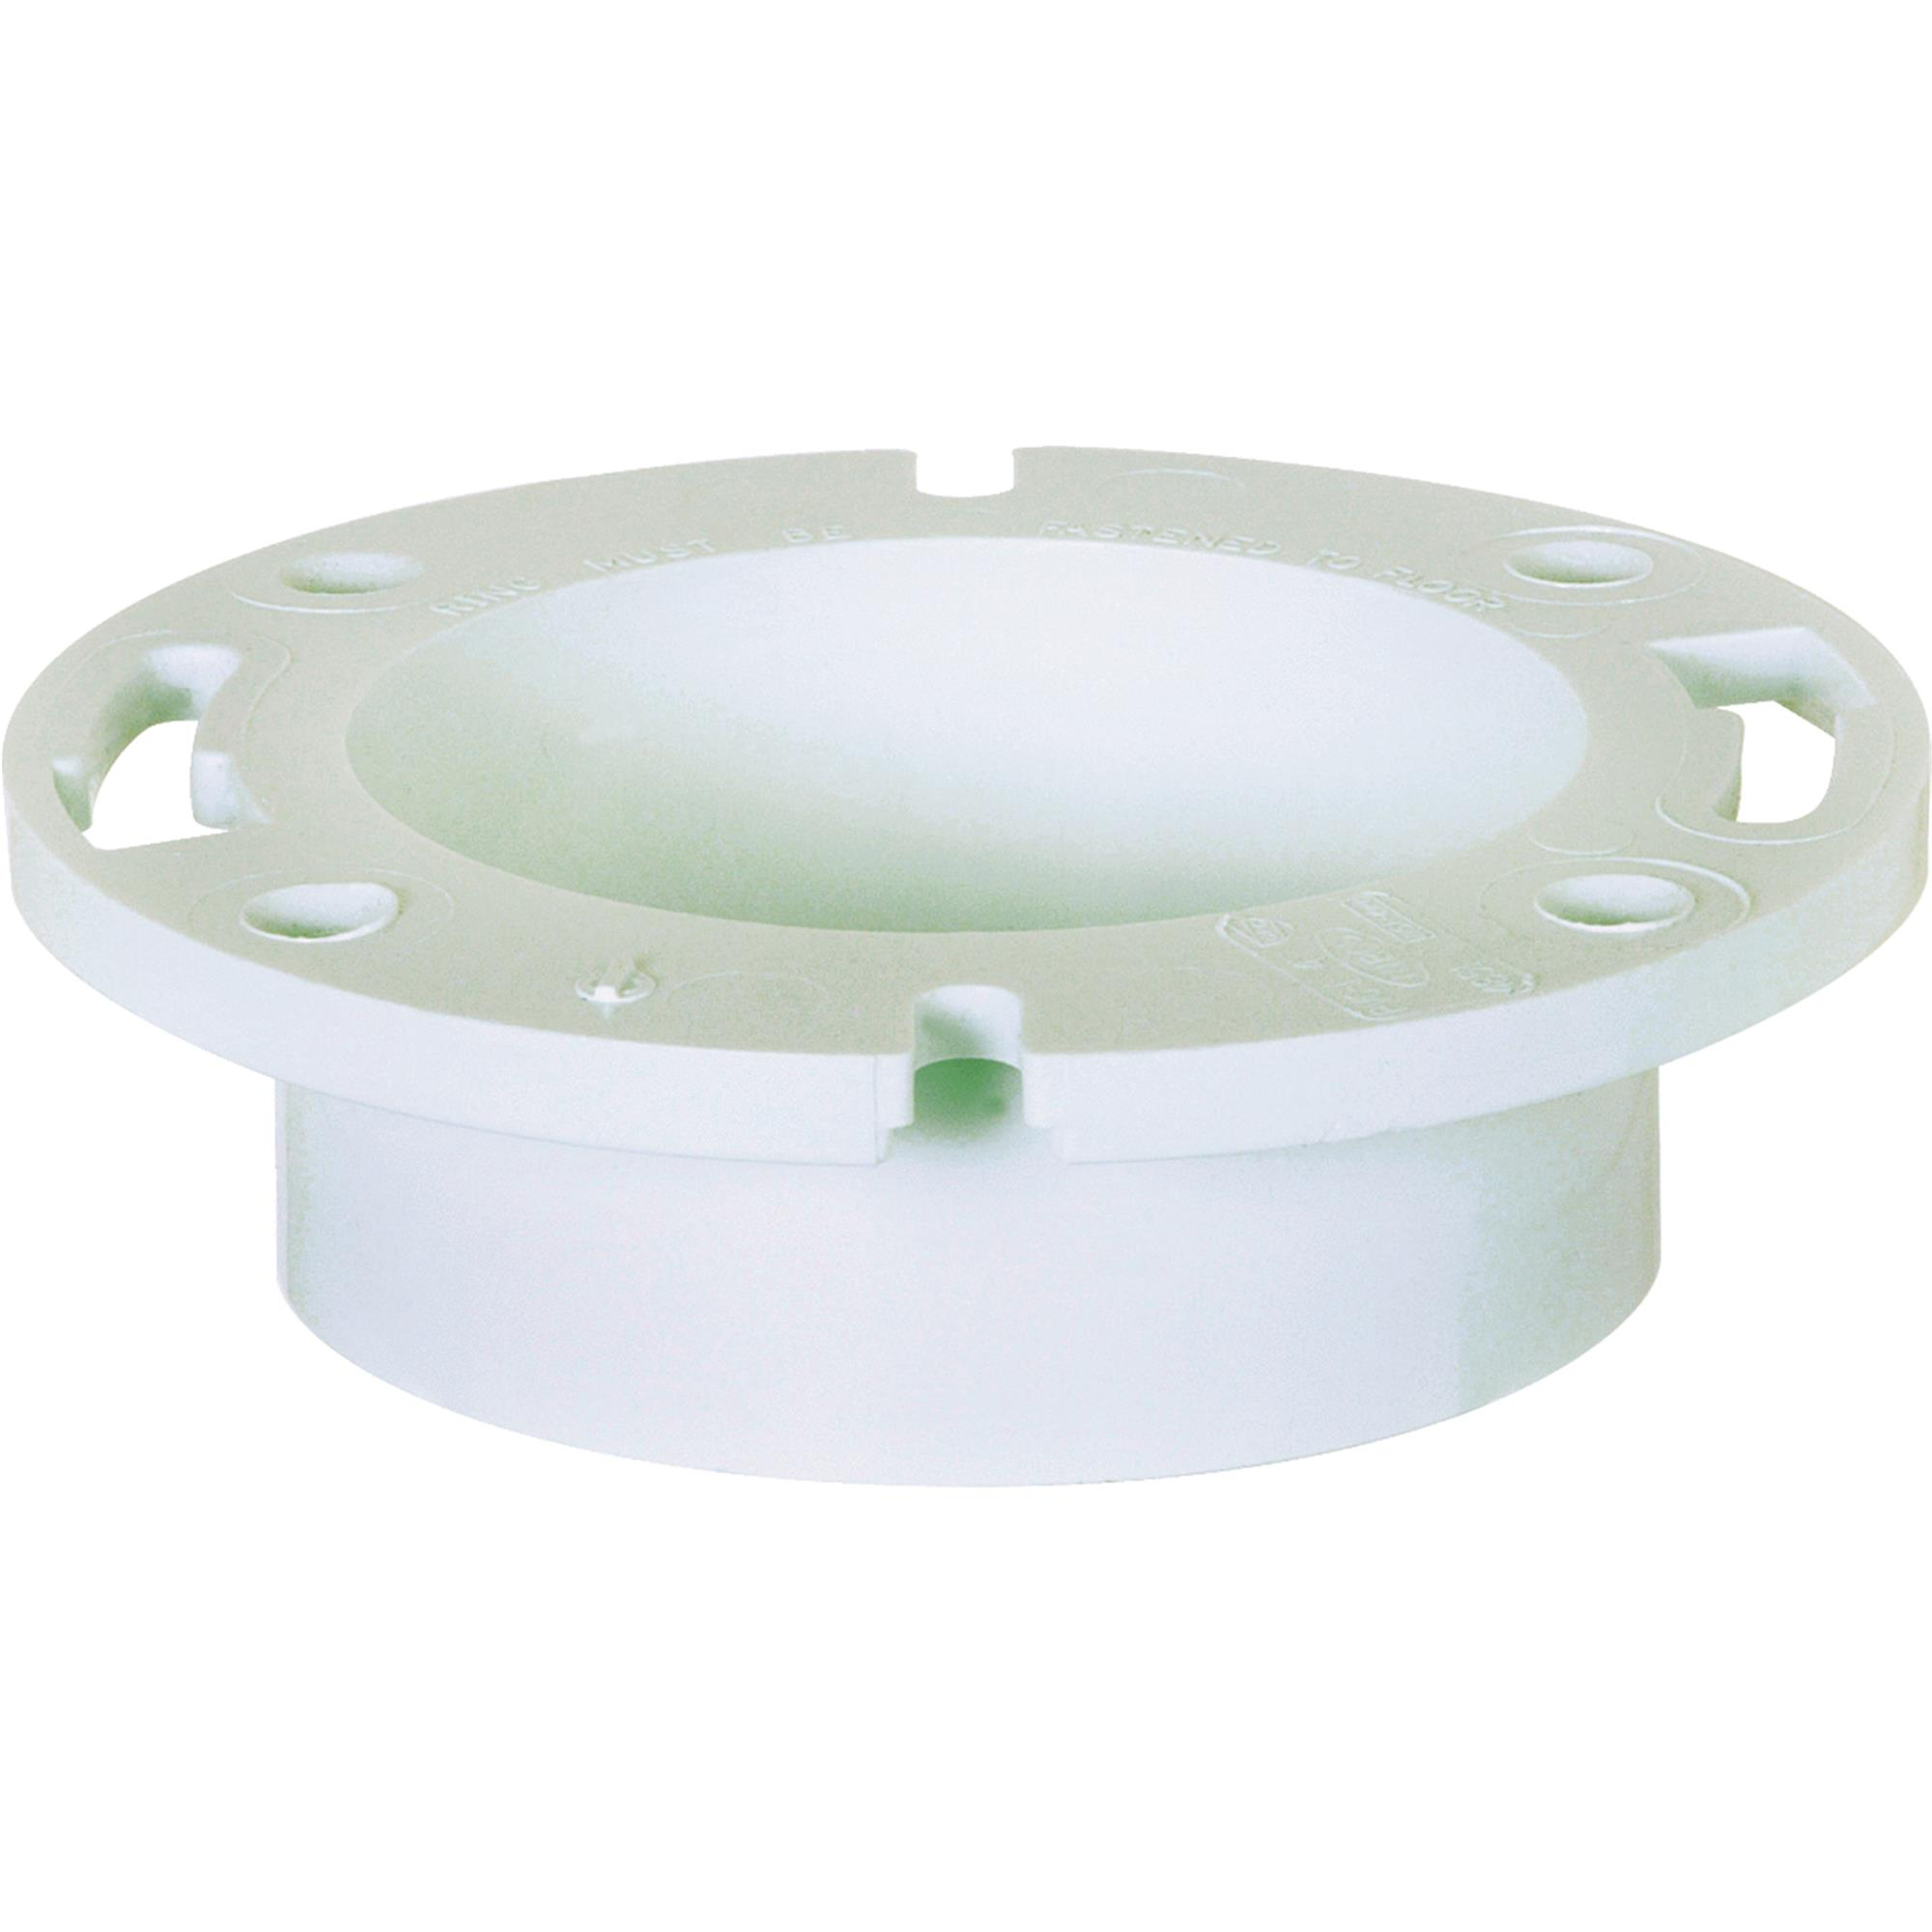 """Sioux Chief 4"""" HUB PVC Closet Flange by Sioux Chief"""